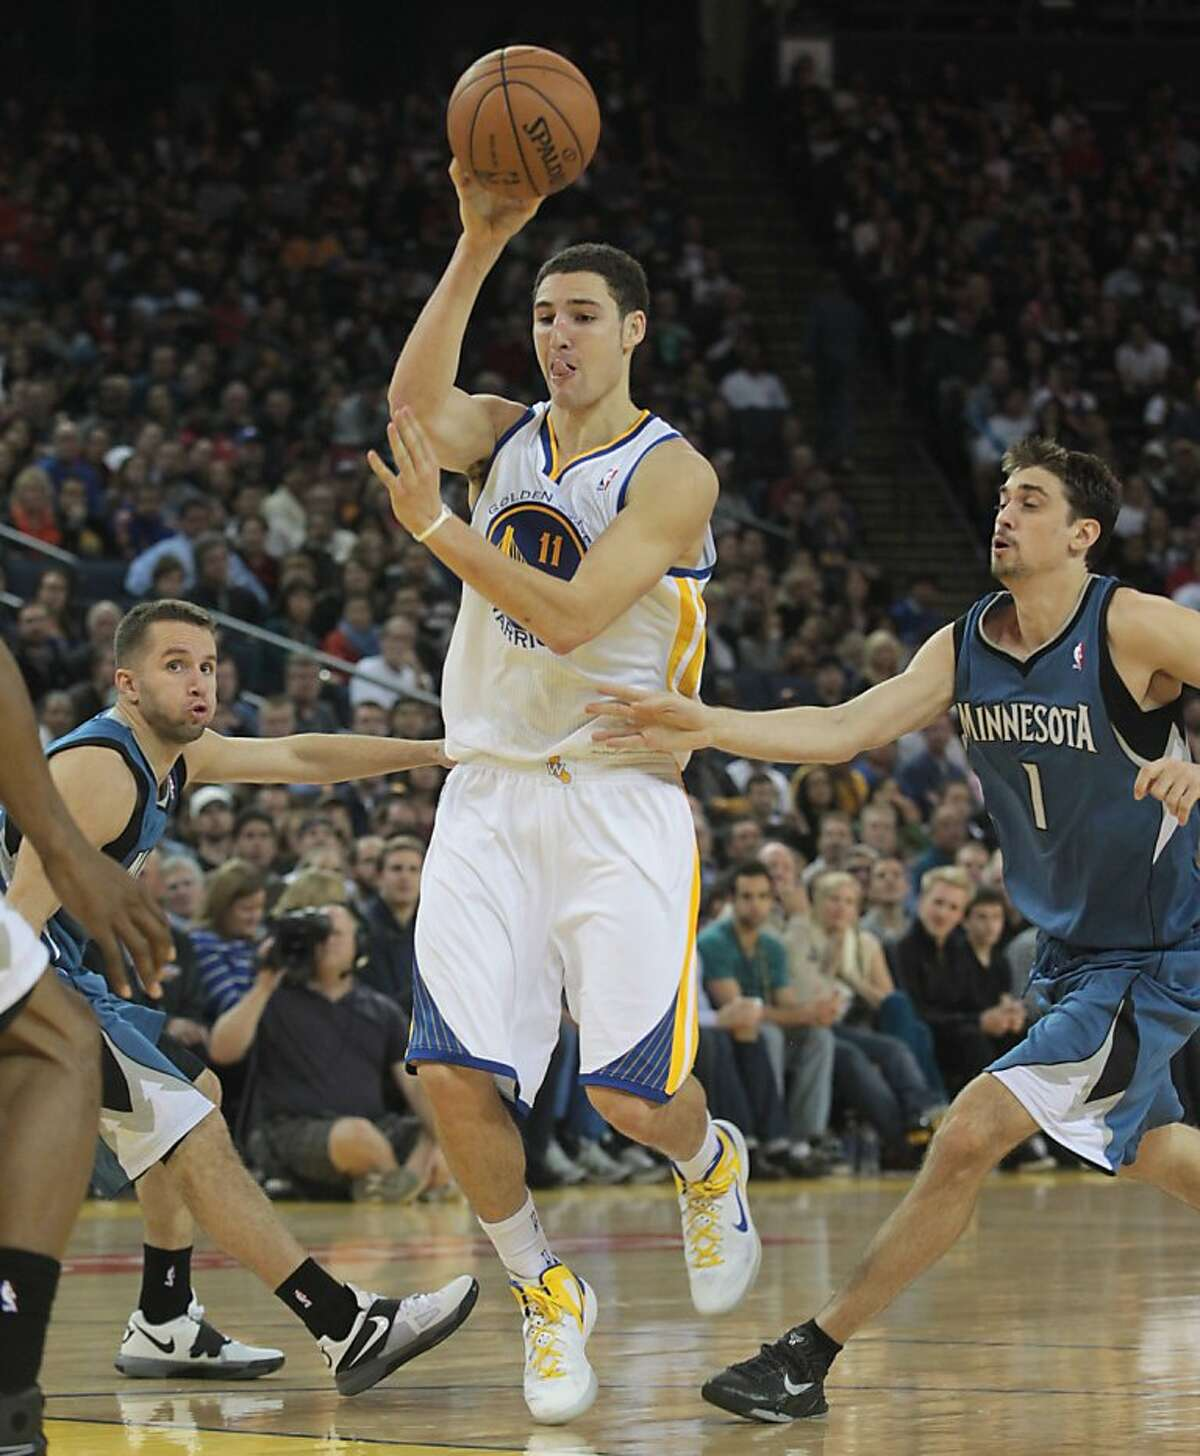 Golden State Warriors' Klay Thompson (11) delivers a no look pass against the Minnesota Timberwolves in the second half of an NBA basketball game in Oakland, Calif., Saturday, Nov. 24, 2012. The Warriors won 96-85. (AP Photo/Mathew Sumner)